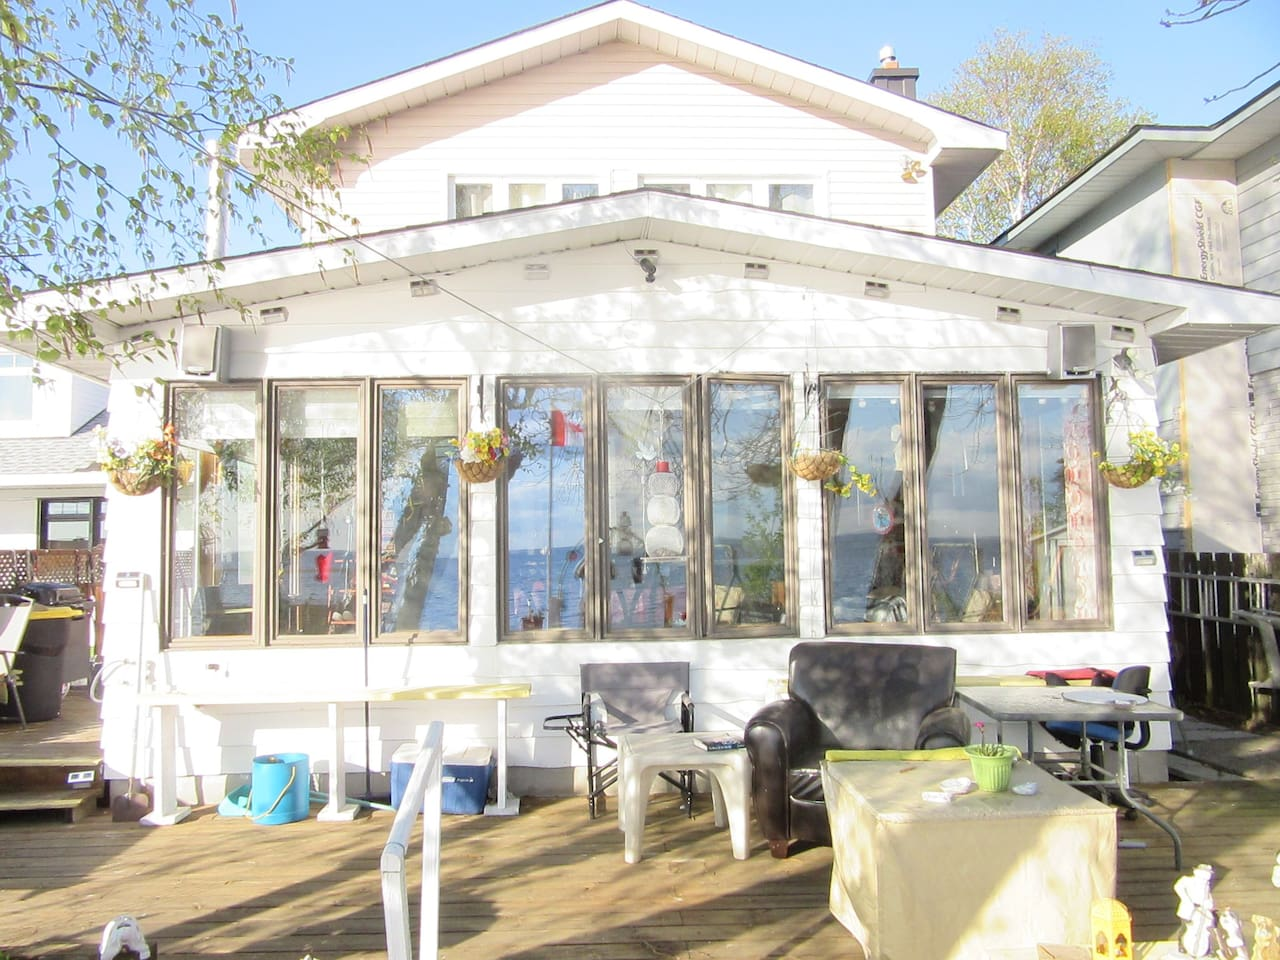 #1 ROOM Queen Bed PLUS  Queen Mattress has  a panoramic view of Lake Nippissing.    Floor-to -ceiling  windows to hear  melodic sounds of gentle waves  and soft   breeze  on  a 30 foot Deck on the white sand where  fish, birds, animals welcome  you.